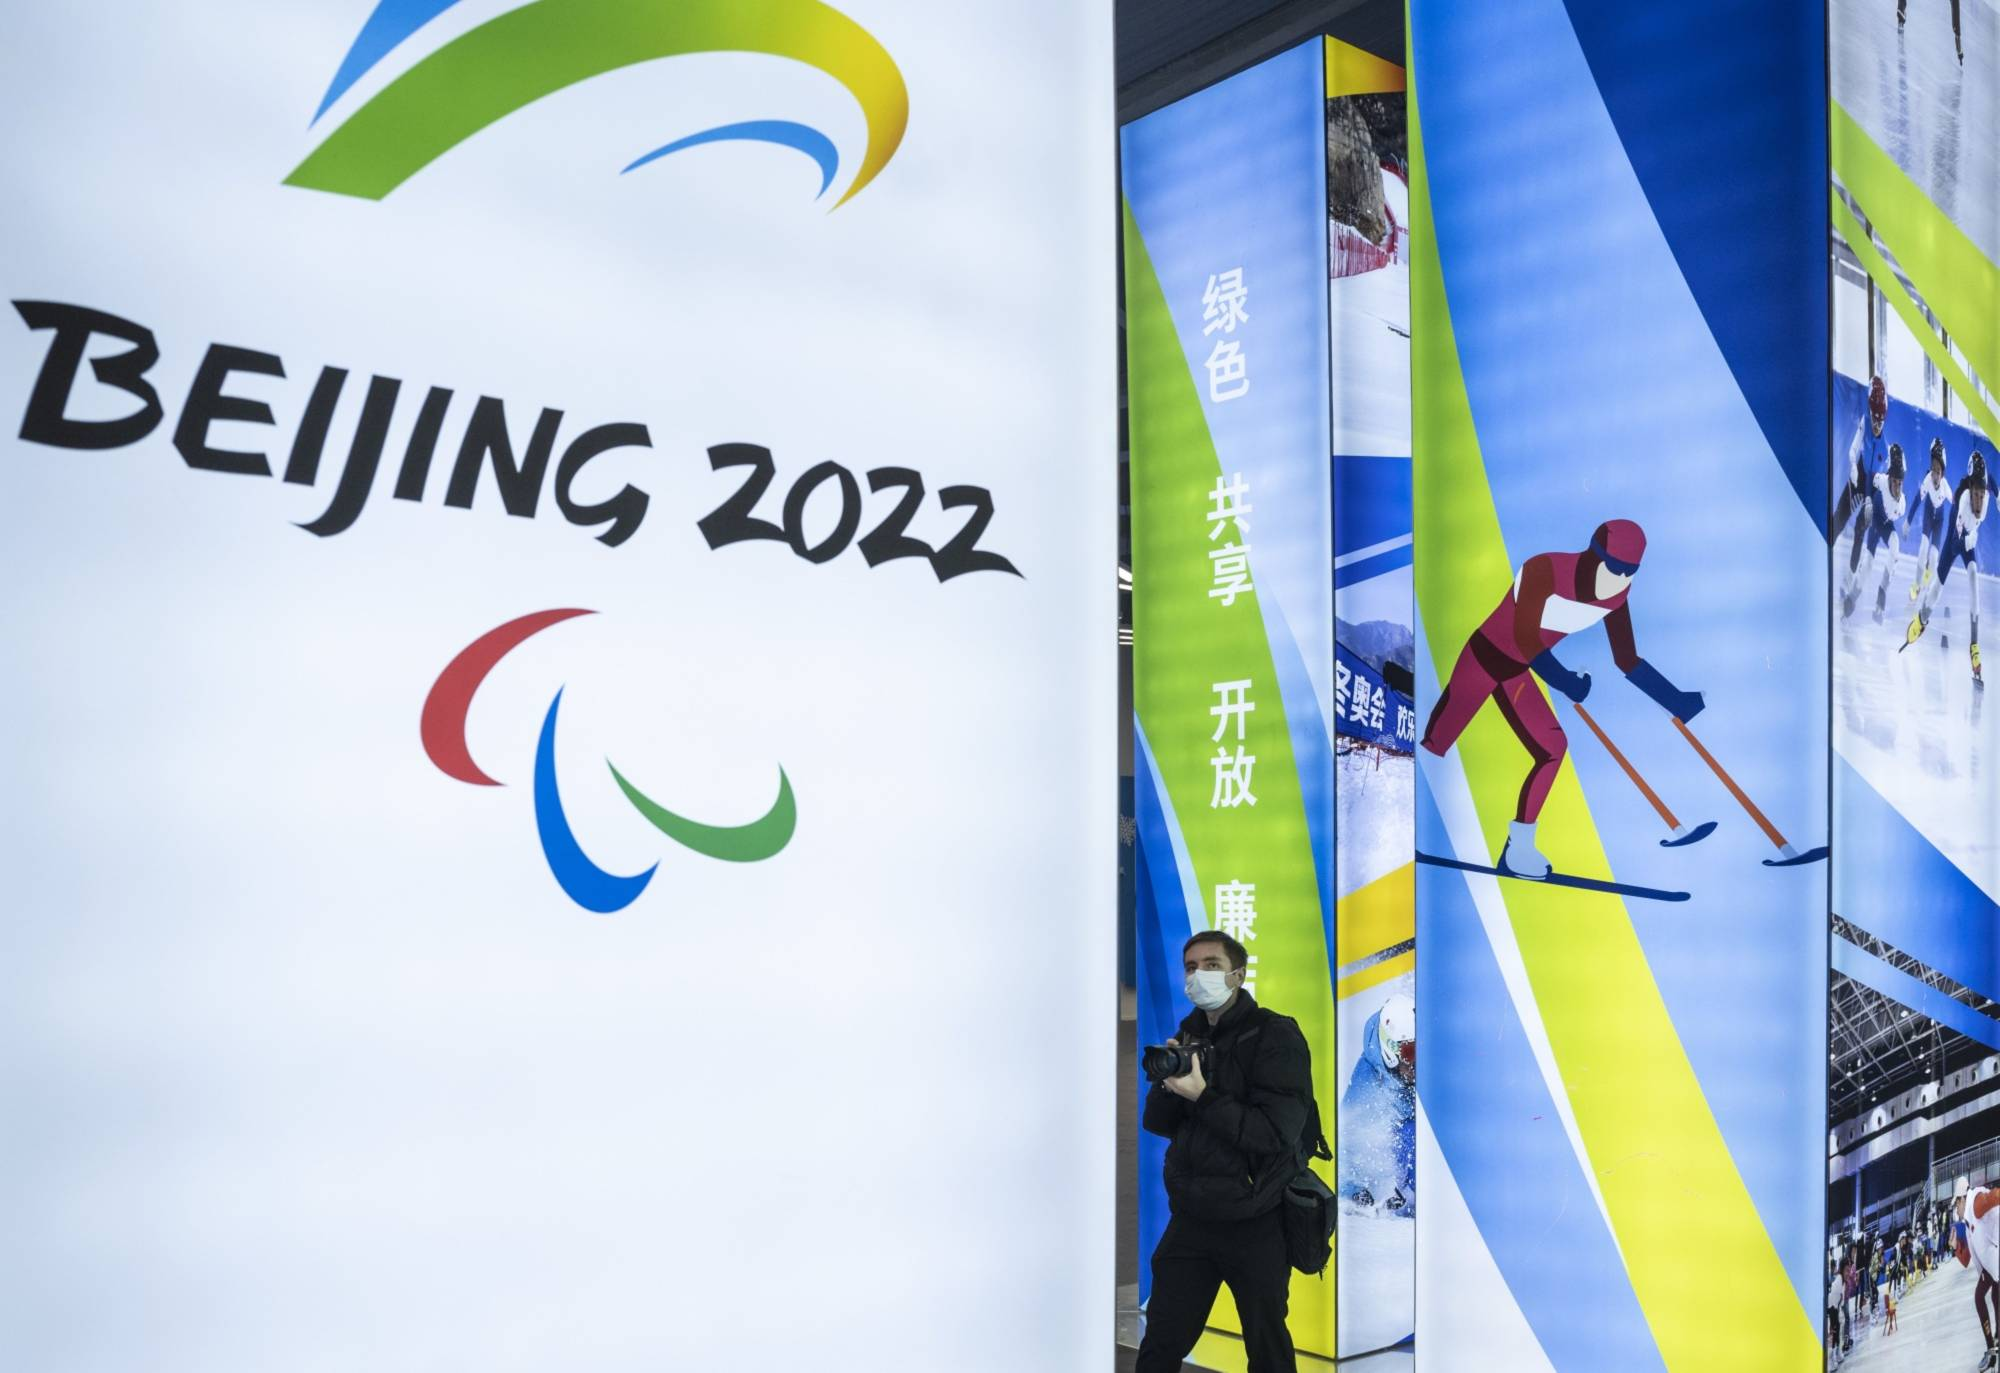 The exhibition center for the Beijing 2022 Winter Olympics in the city's Yaqing district | GETTY IMAGES / VIA BLOOMBERG